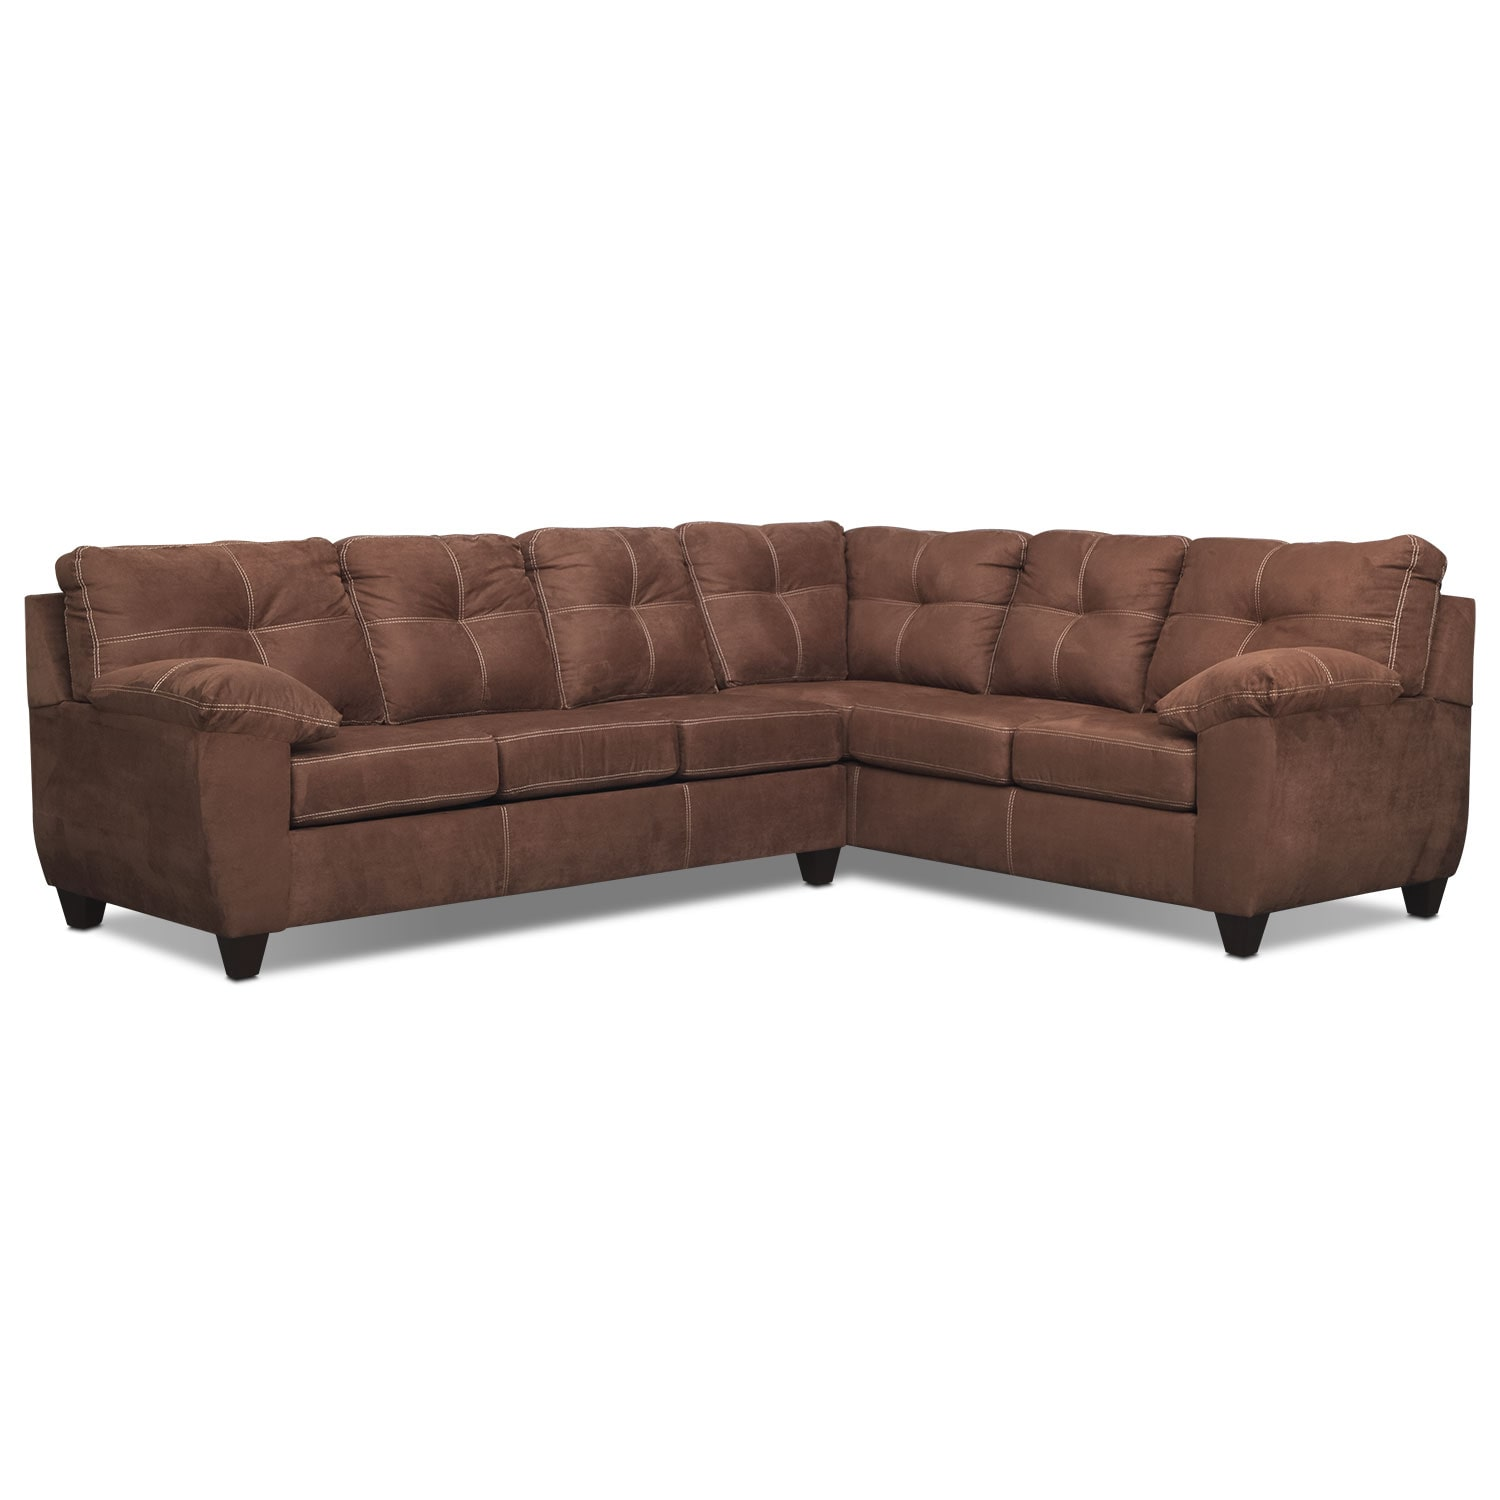 Rialto 2-Piece Sectional with Right-Facing Corner Sofa - Coffee